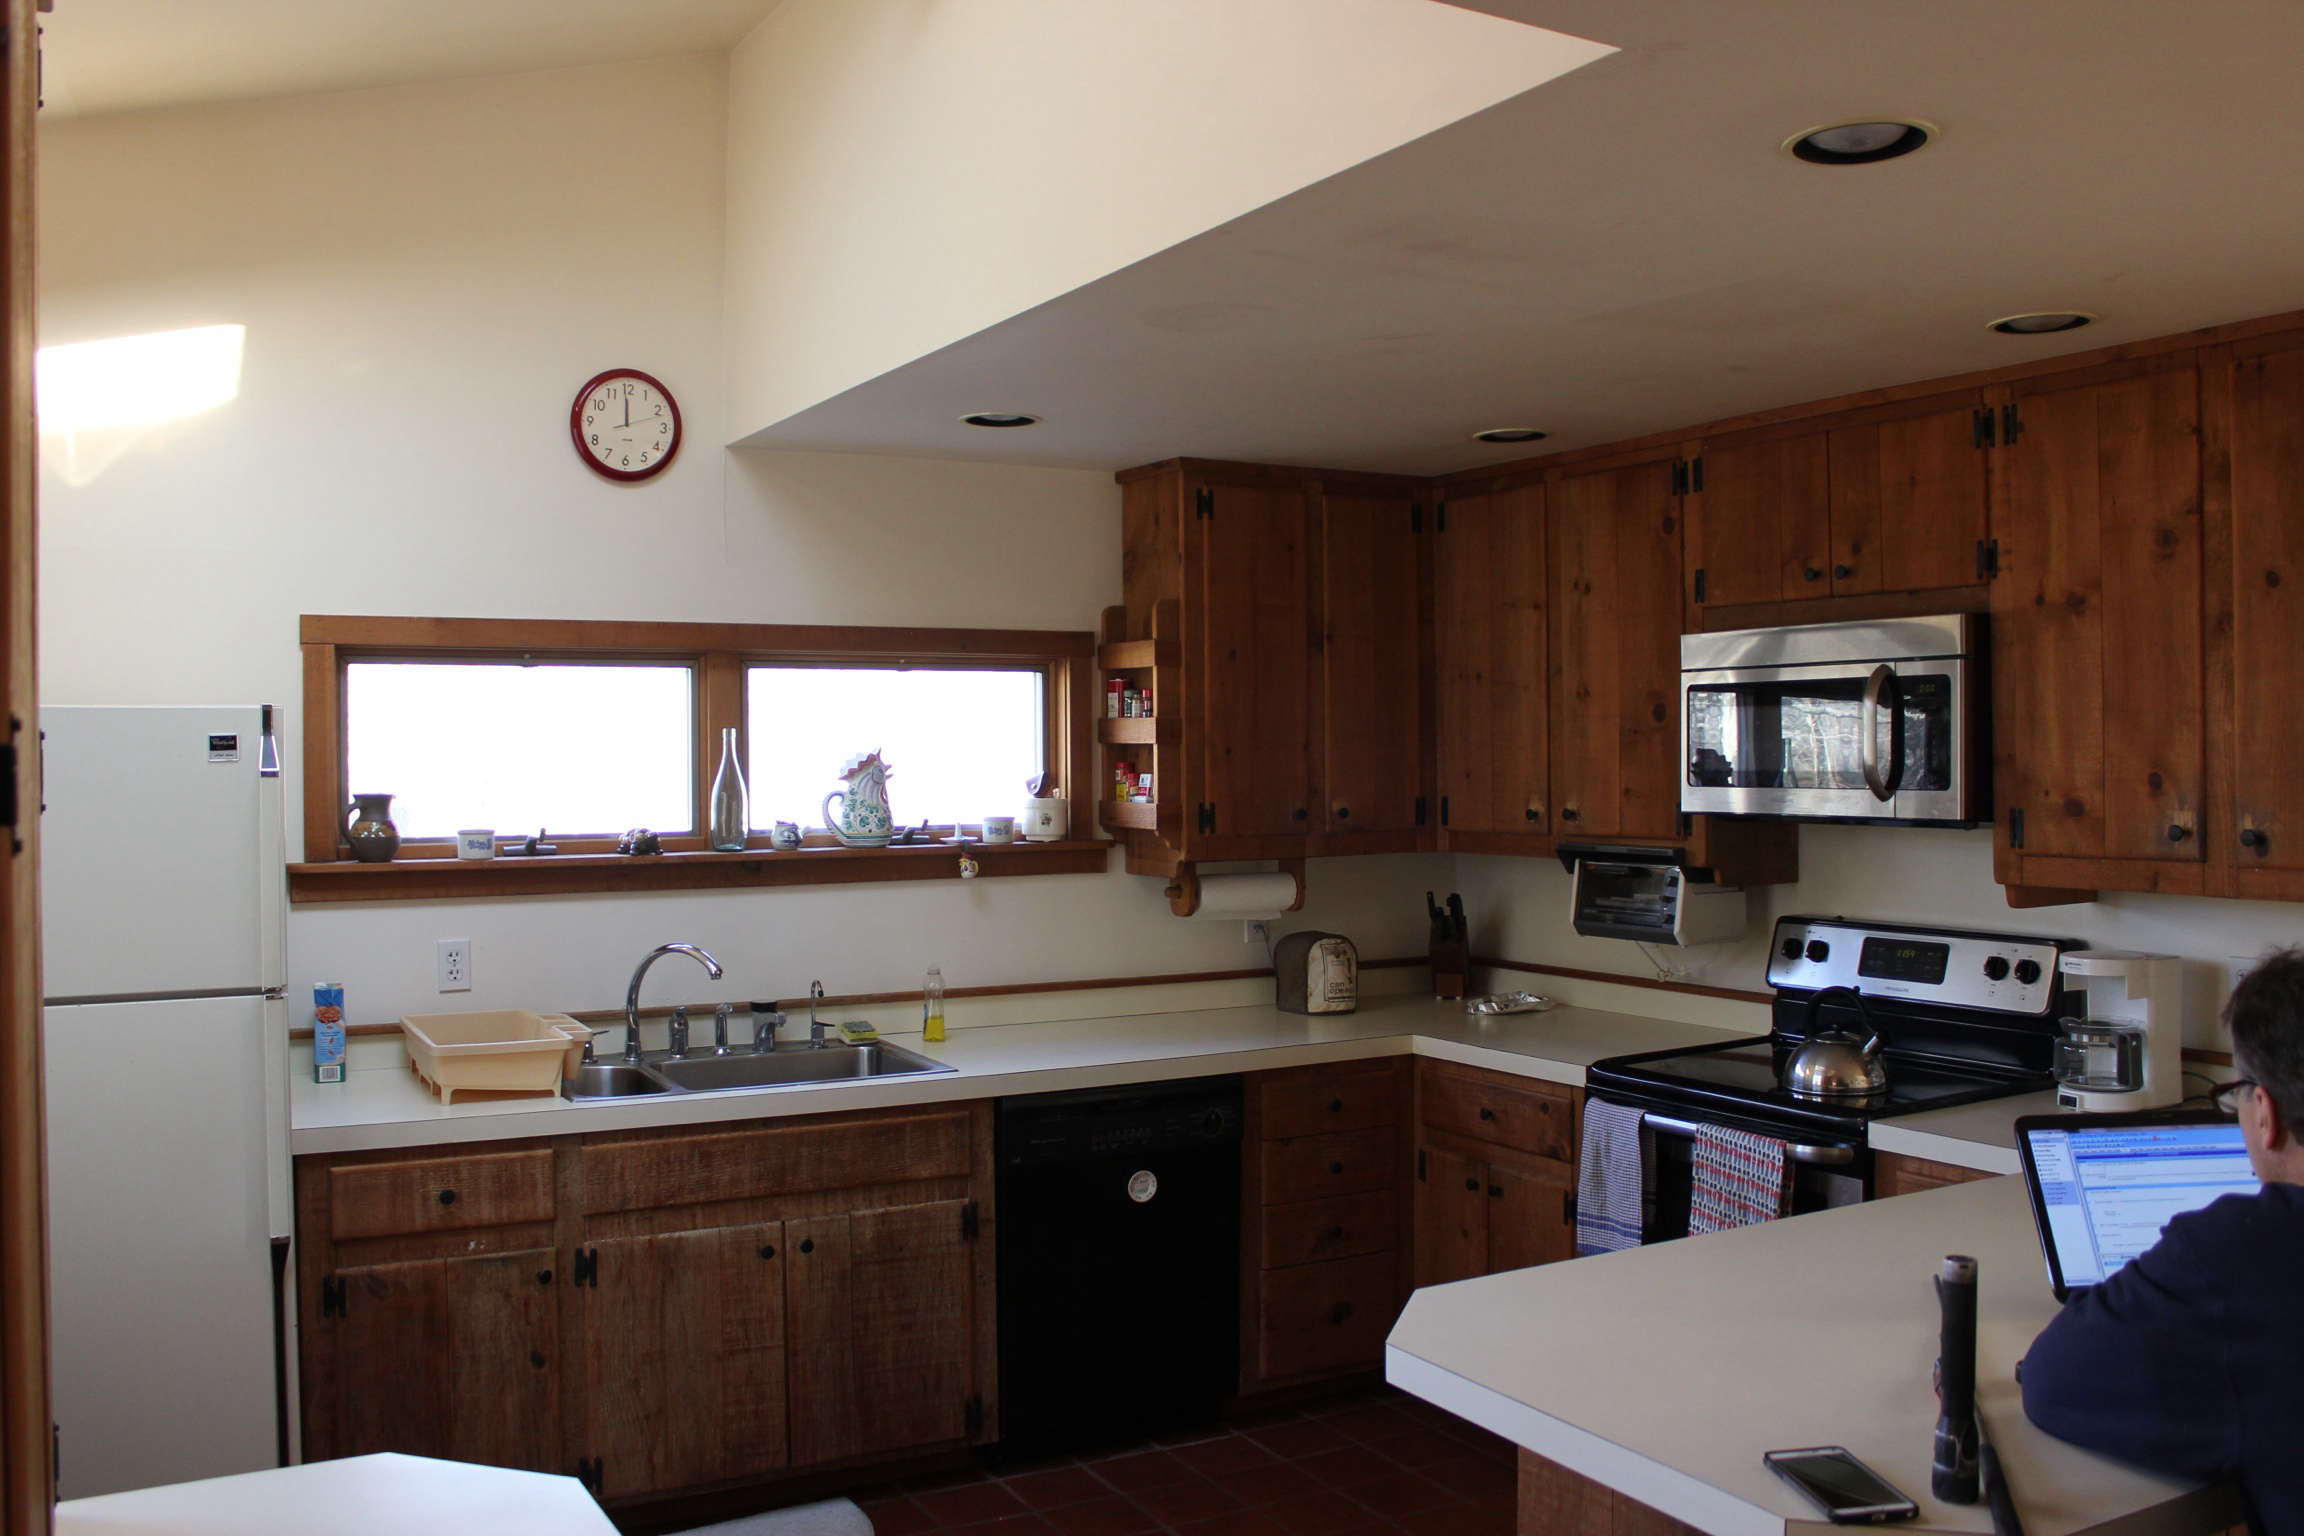 The kitchen, as it was. Jones opened up the enclosed spaceand replaced the heavy, dark cabinetry.